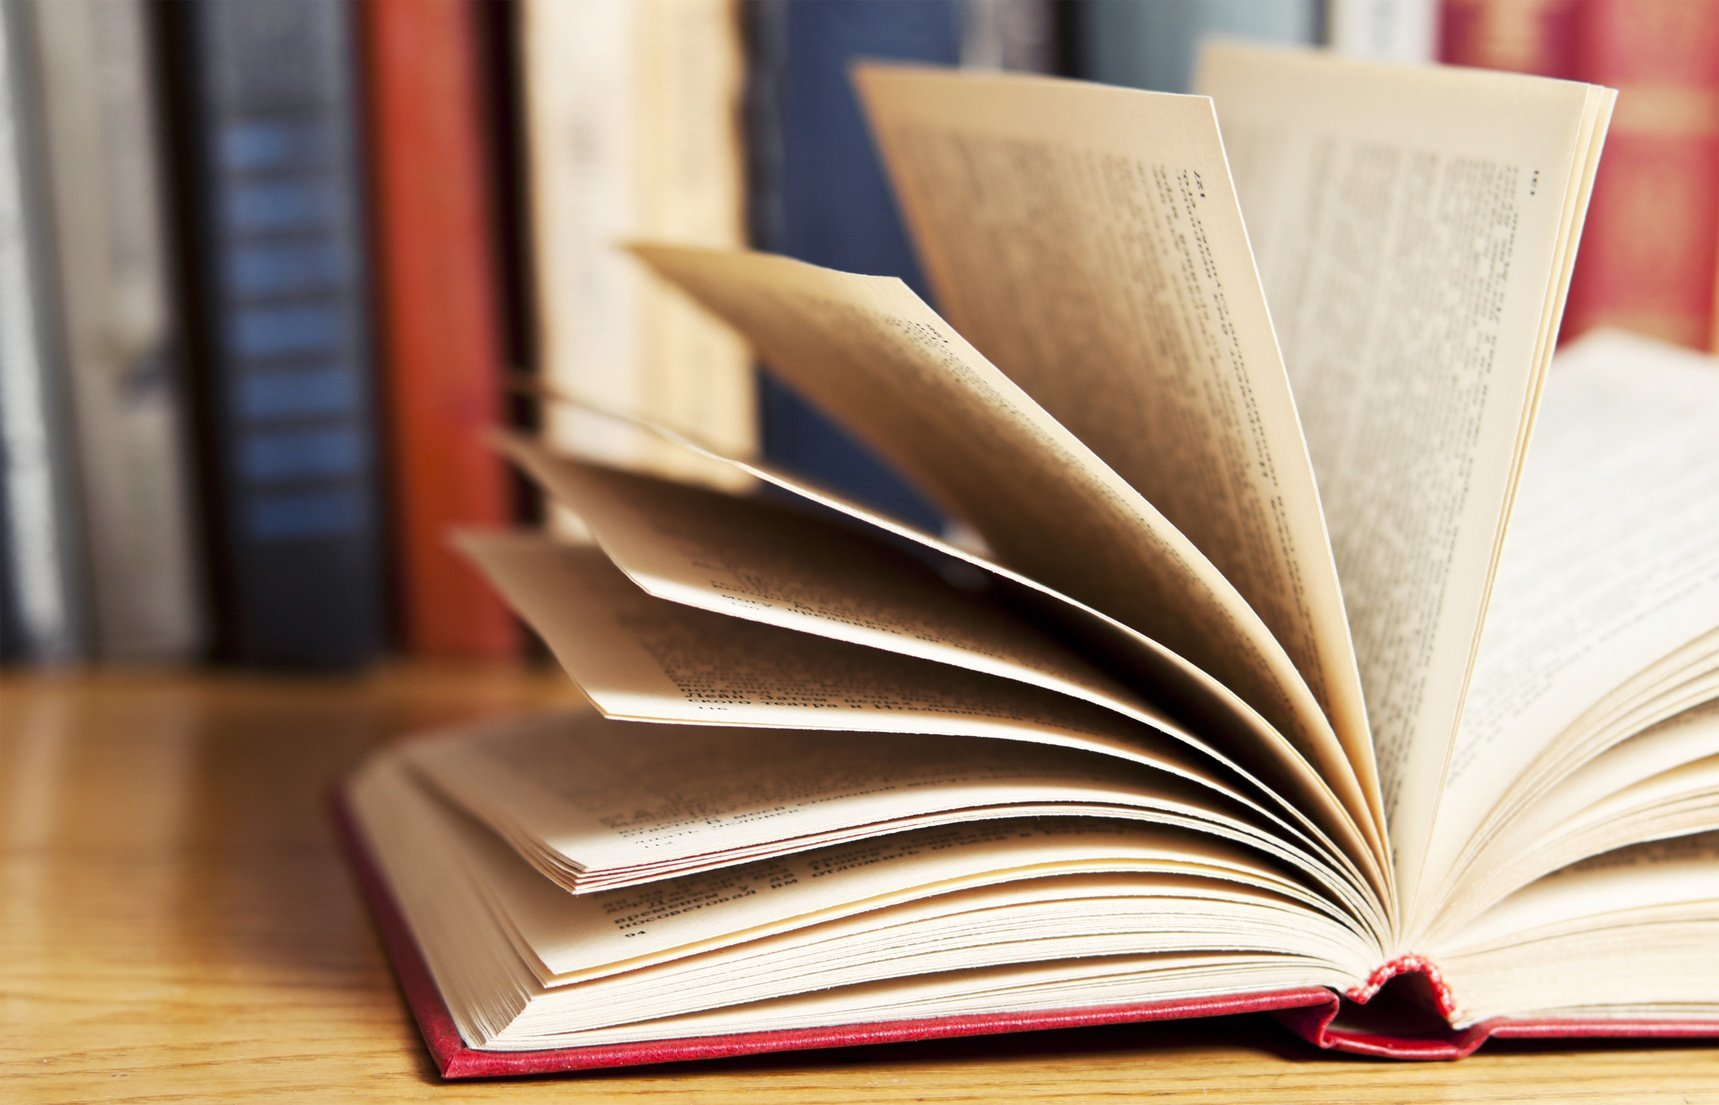 research-book-open